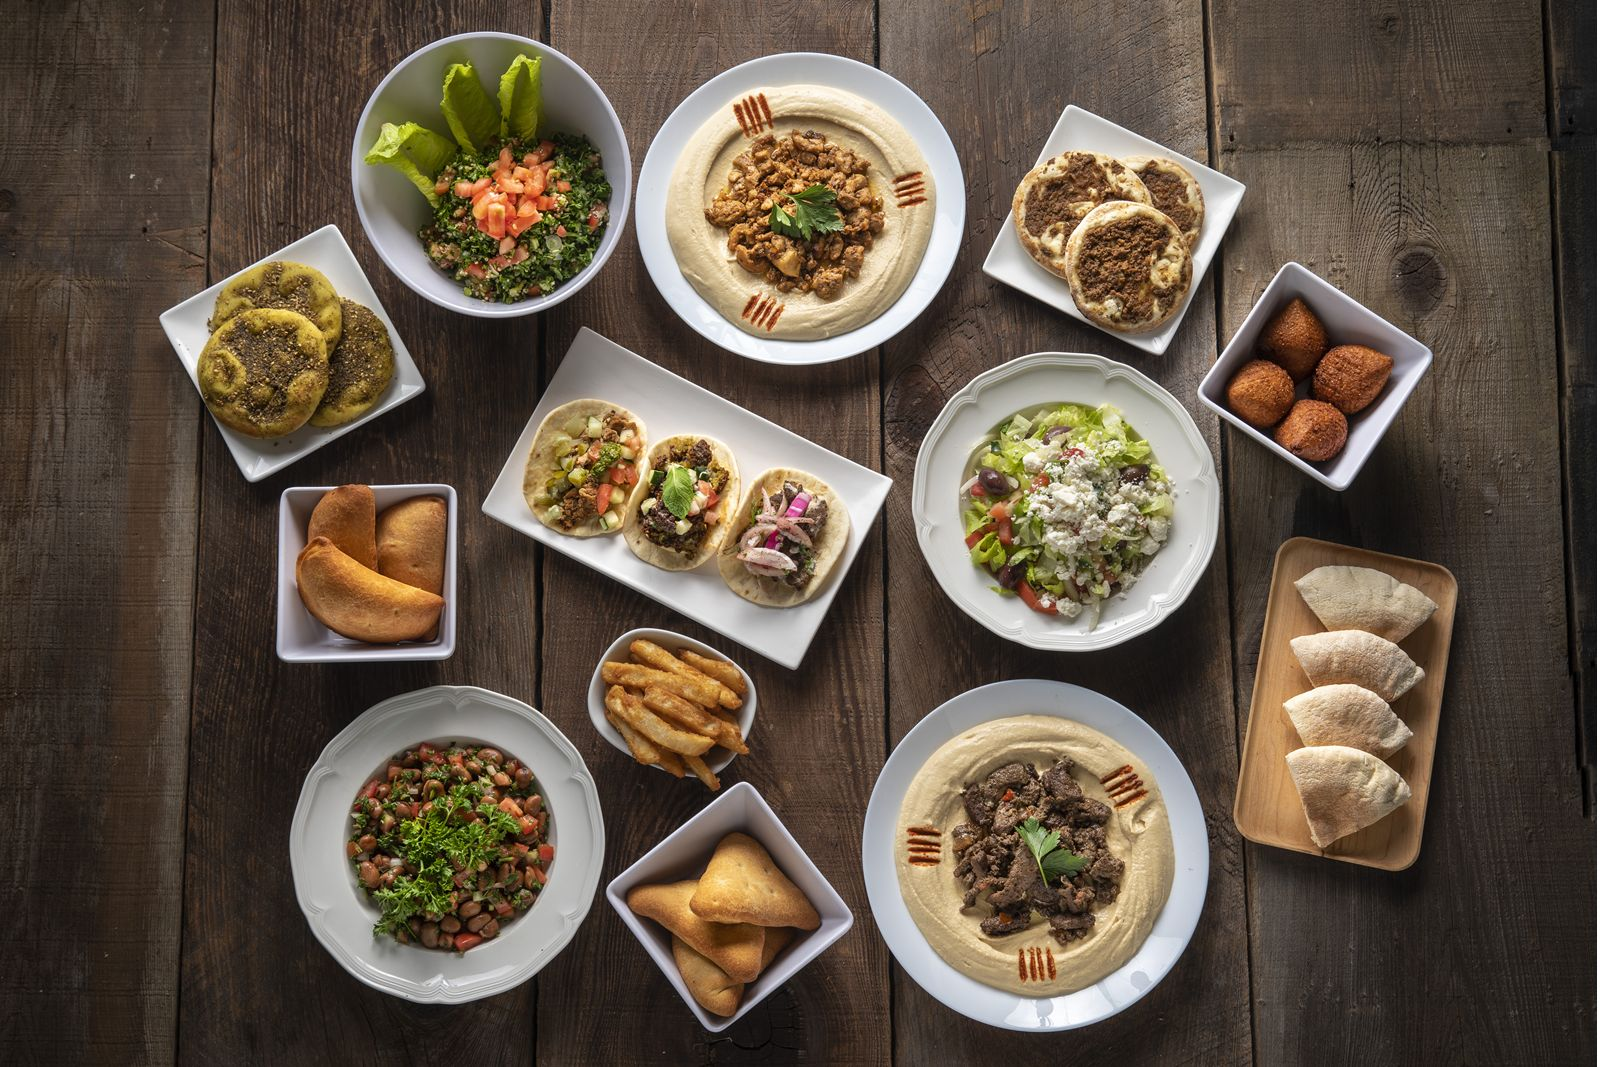 SAJJ Mediterranean Expands Menu With Addition Of Chef-Curated Small Plates Designed To Be Shared.